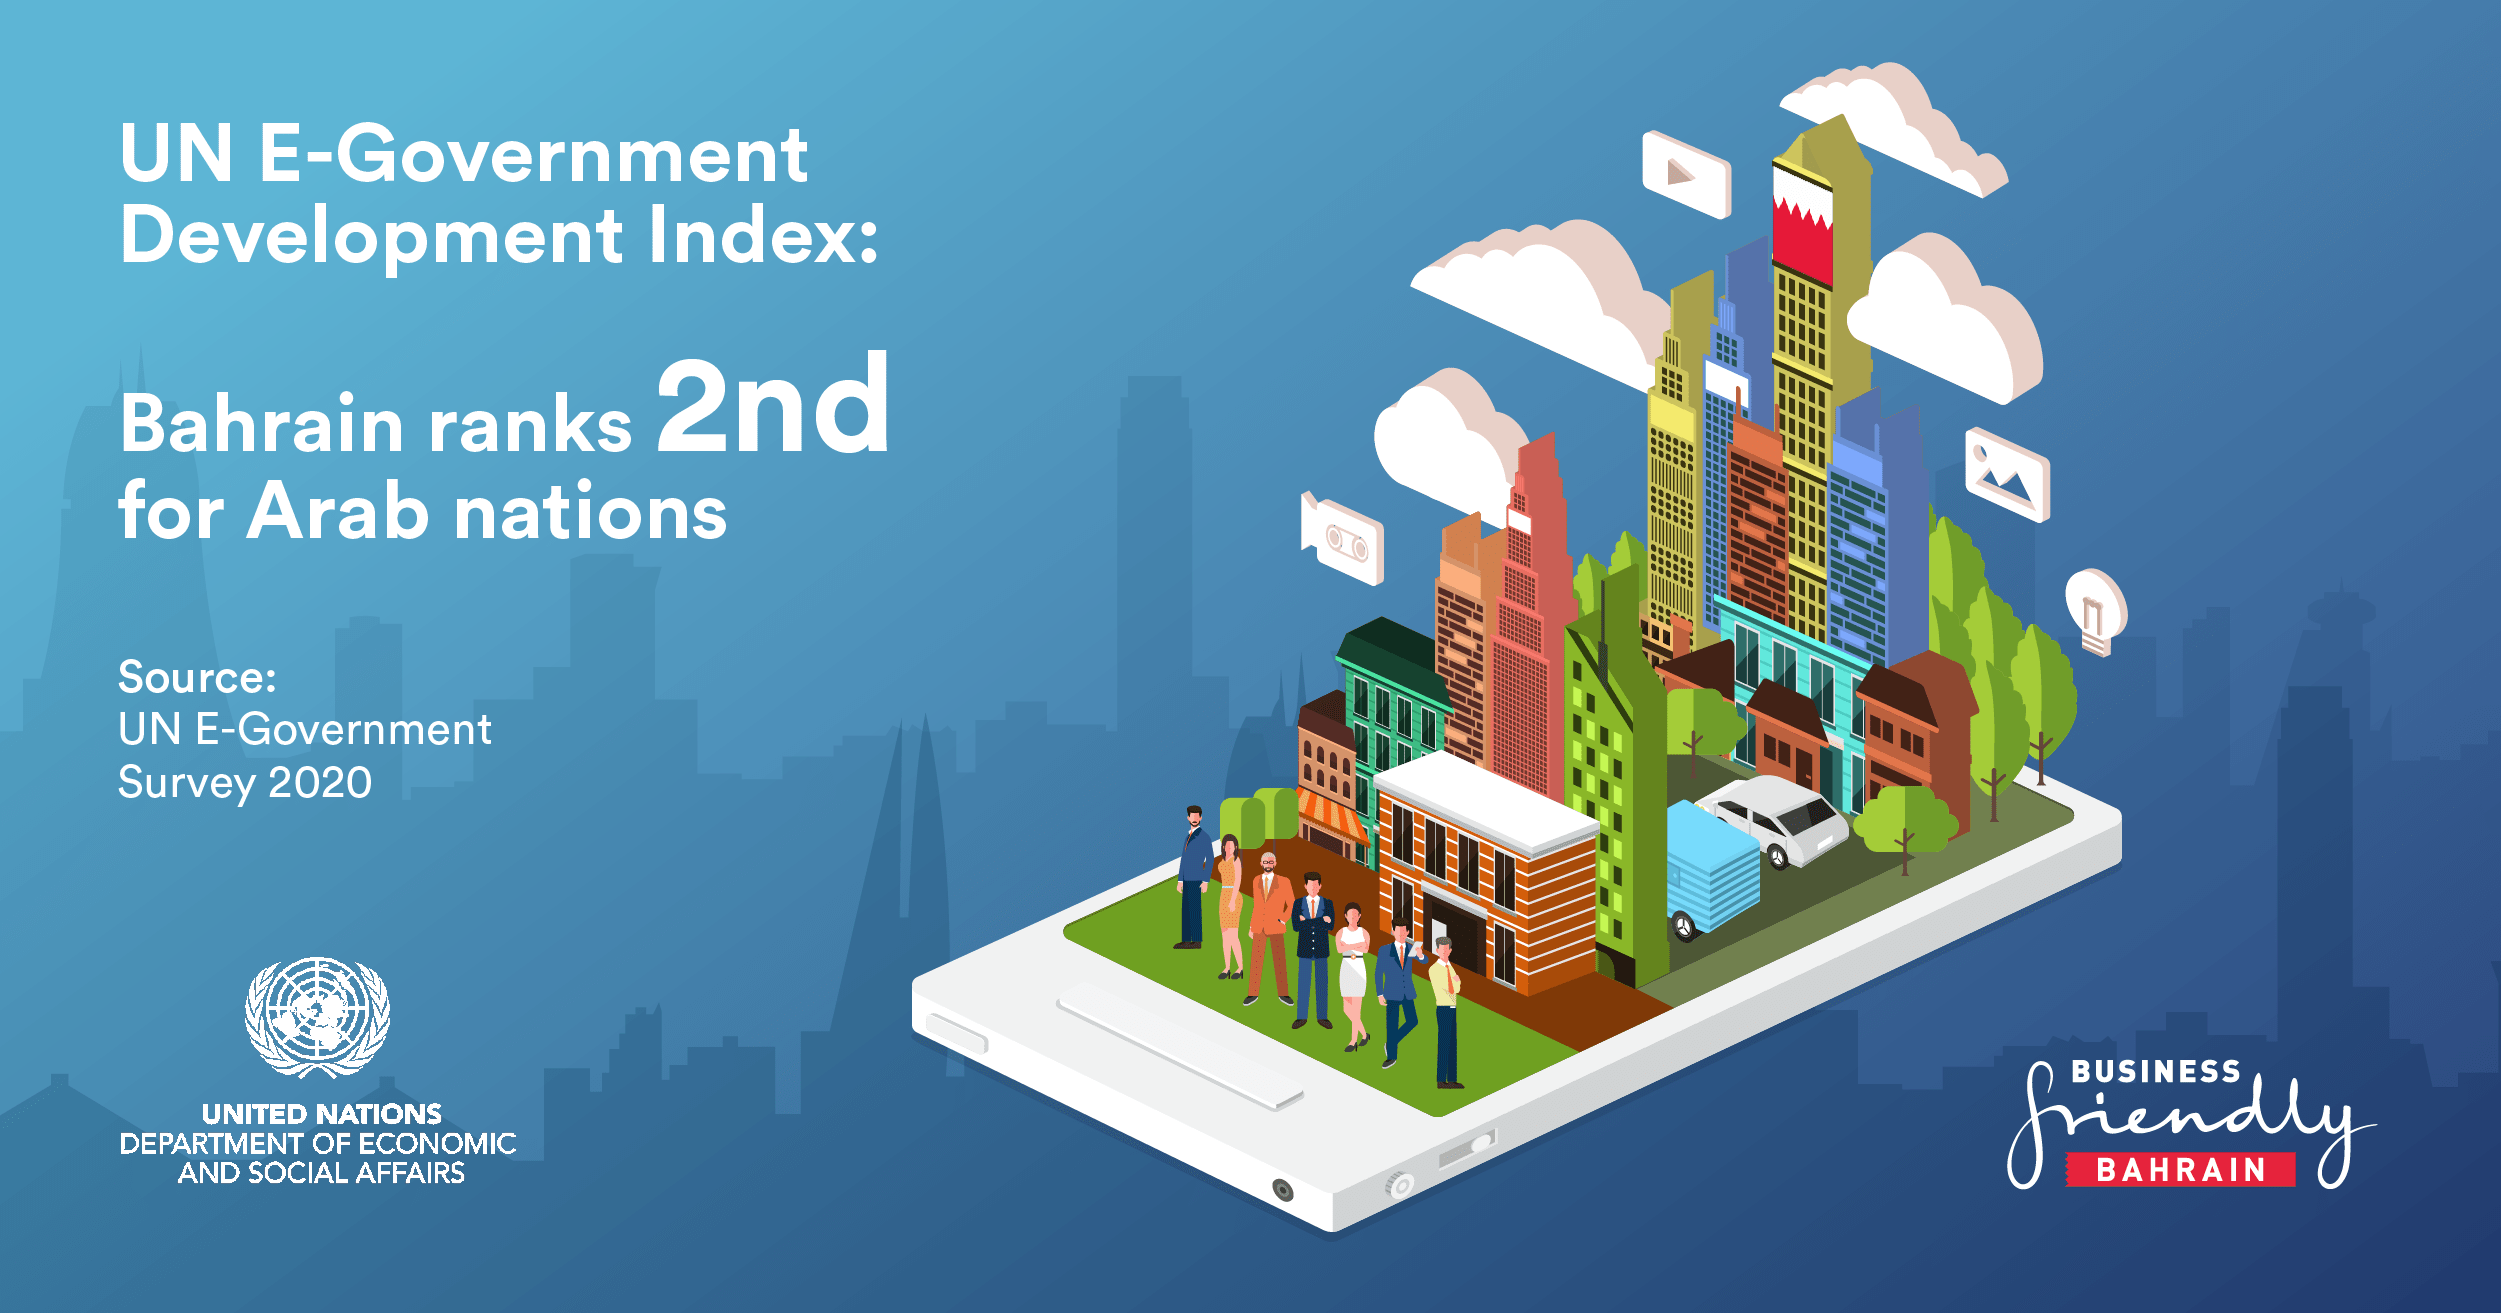 Bahrain Maintains 2nd Place among Arab countries in UN eGovernment Development Index 2020